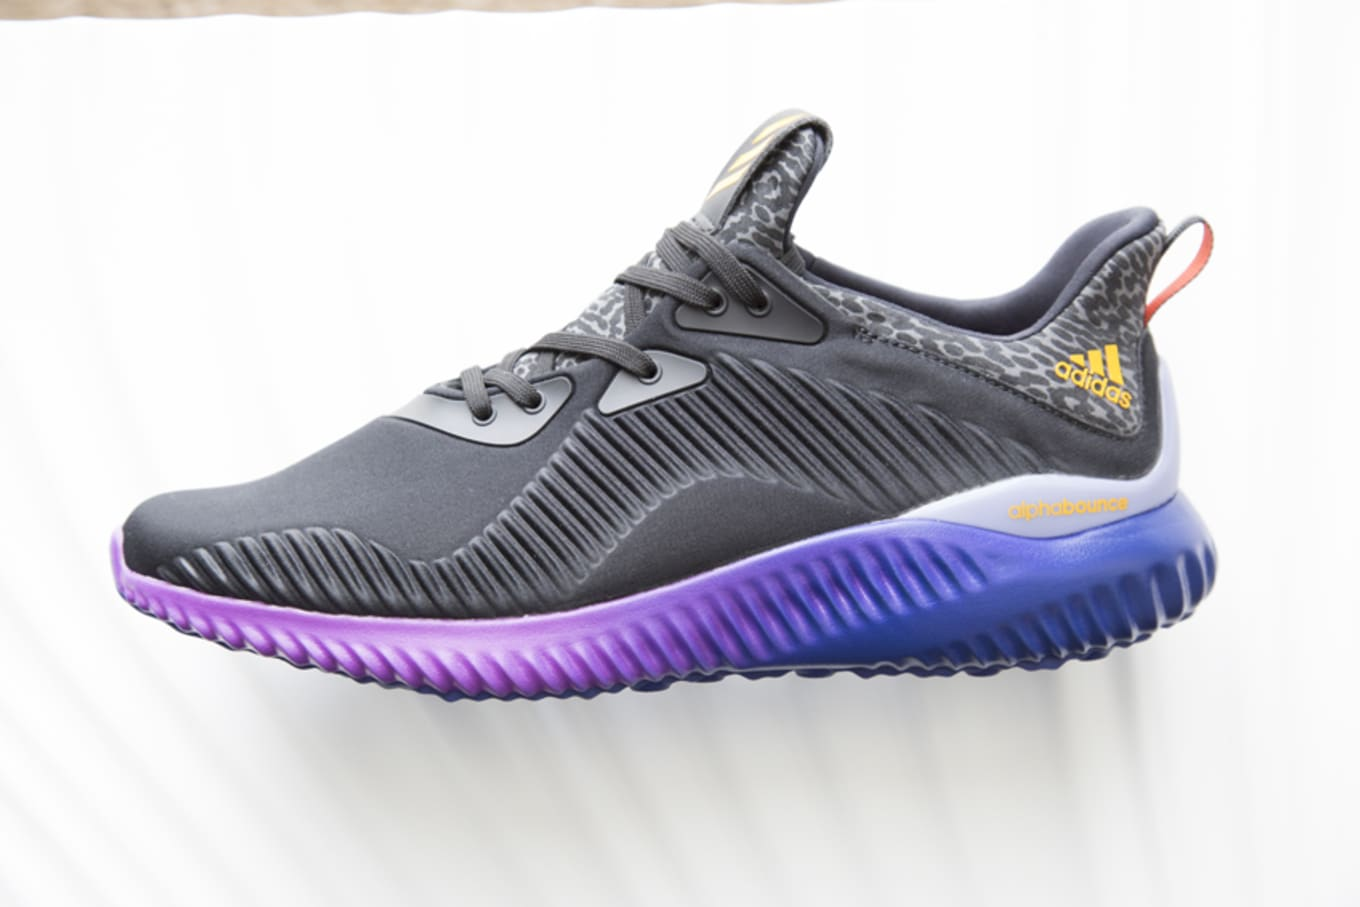 5f687a551dcec 6 Things You Need to Know About the adidas AlphaBOUNCE